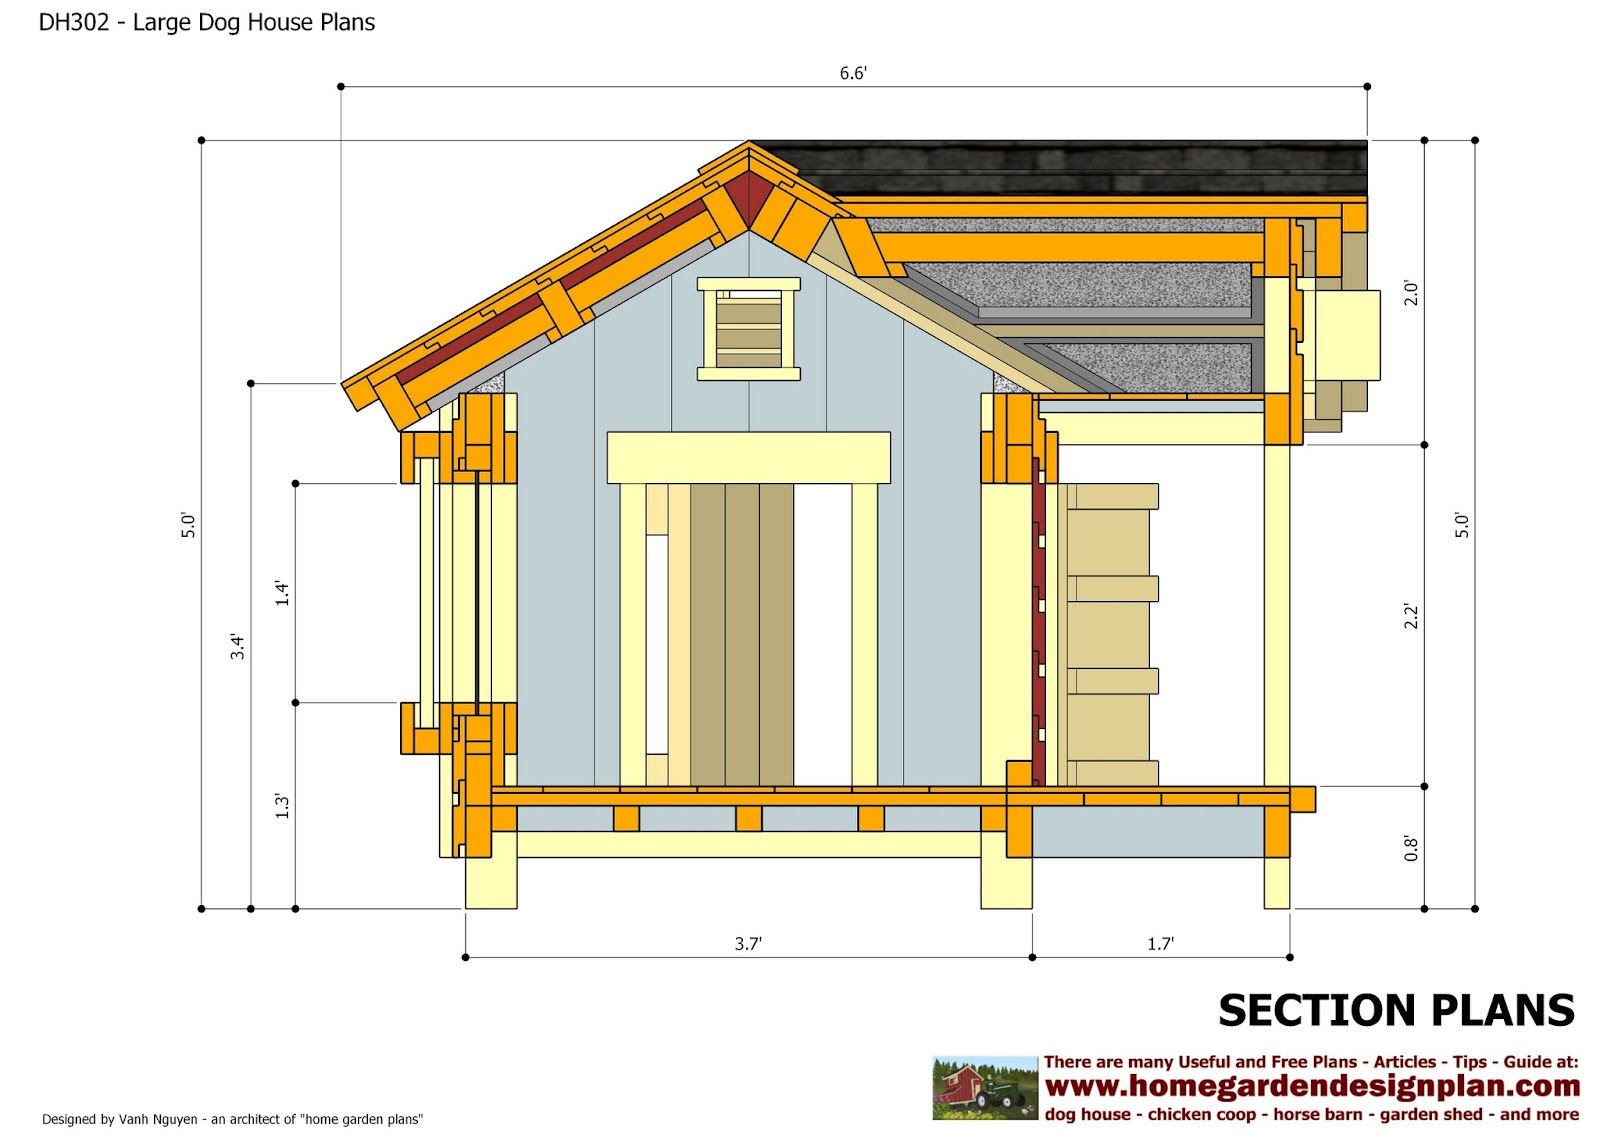 Home garden plans dh302 insulated dog house plans for Dog kennel floor plans